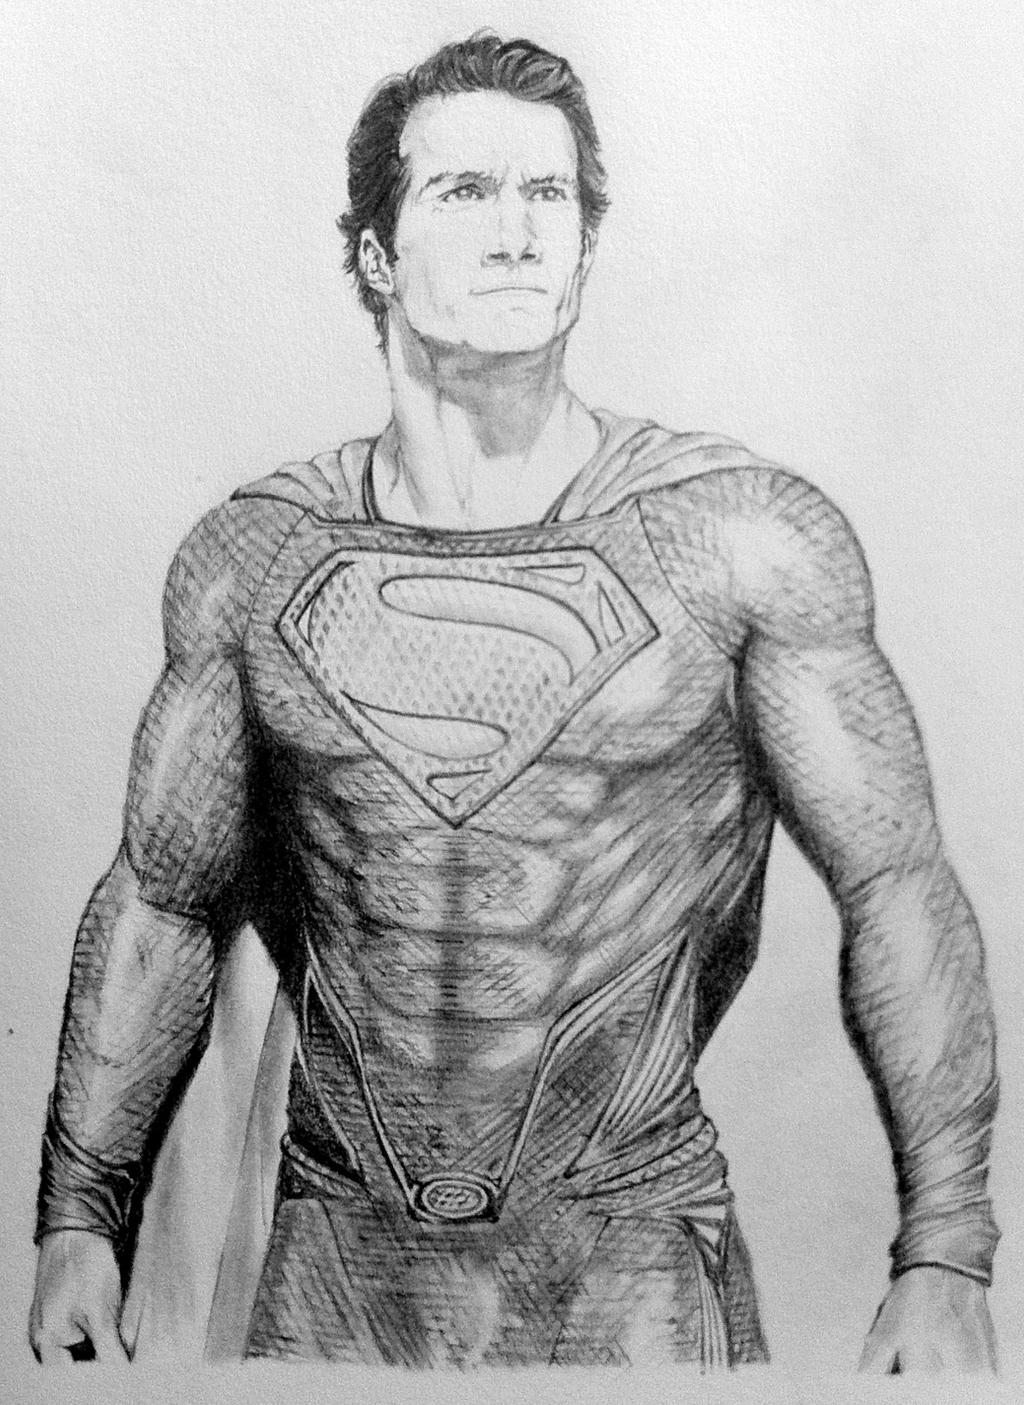 Man of steel by danew guuy on deviantart for Man of steel coloring pages